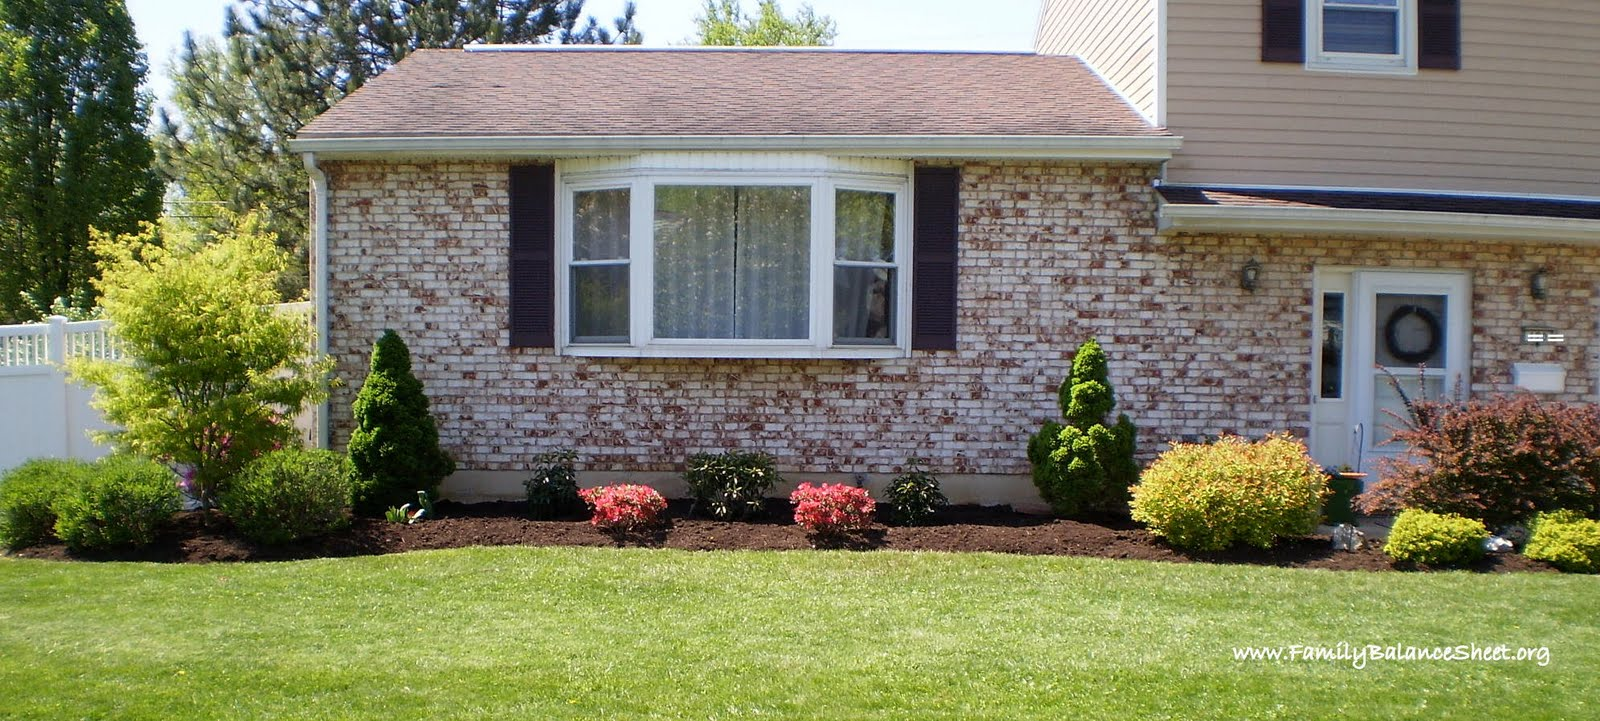 15 tips to help you design your front yard save money too for Best home lawn designs